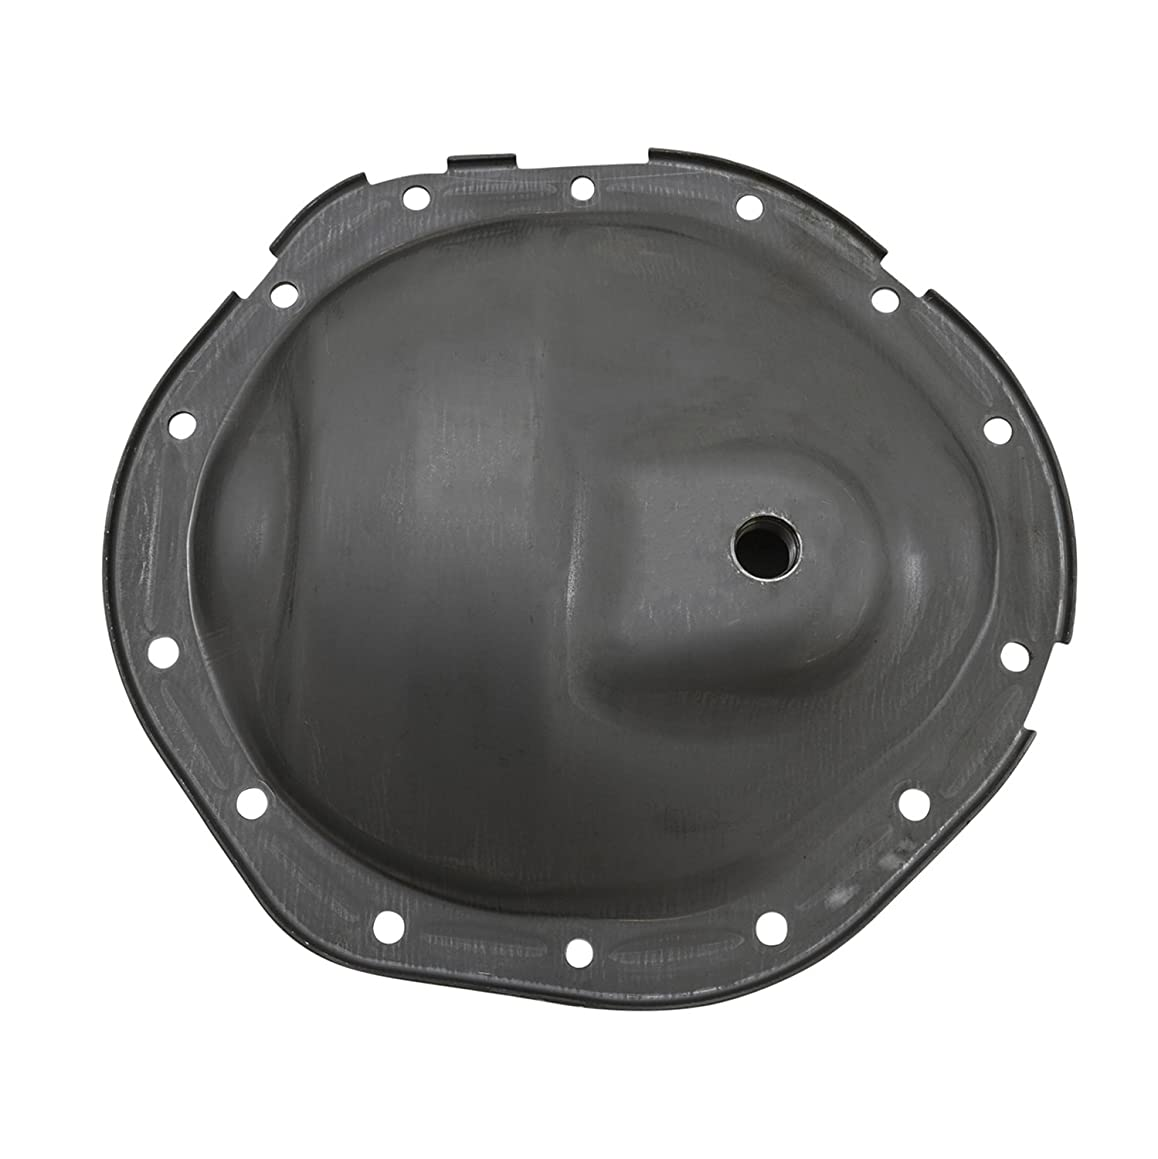 Yukon Gear & Axle (YP C5-GM9.5) Steel Cover for GM 9.5 Differential